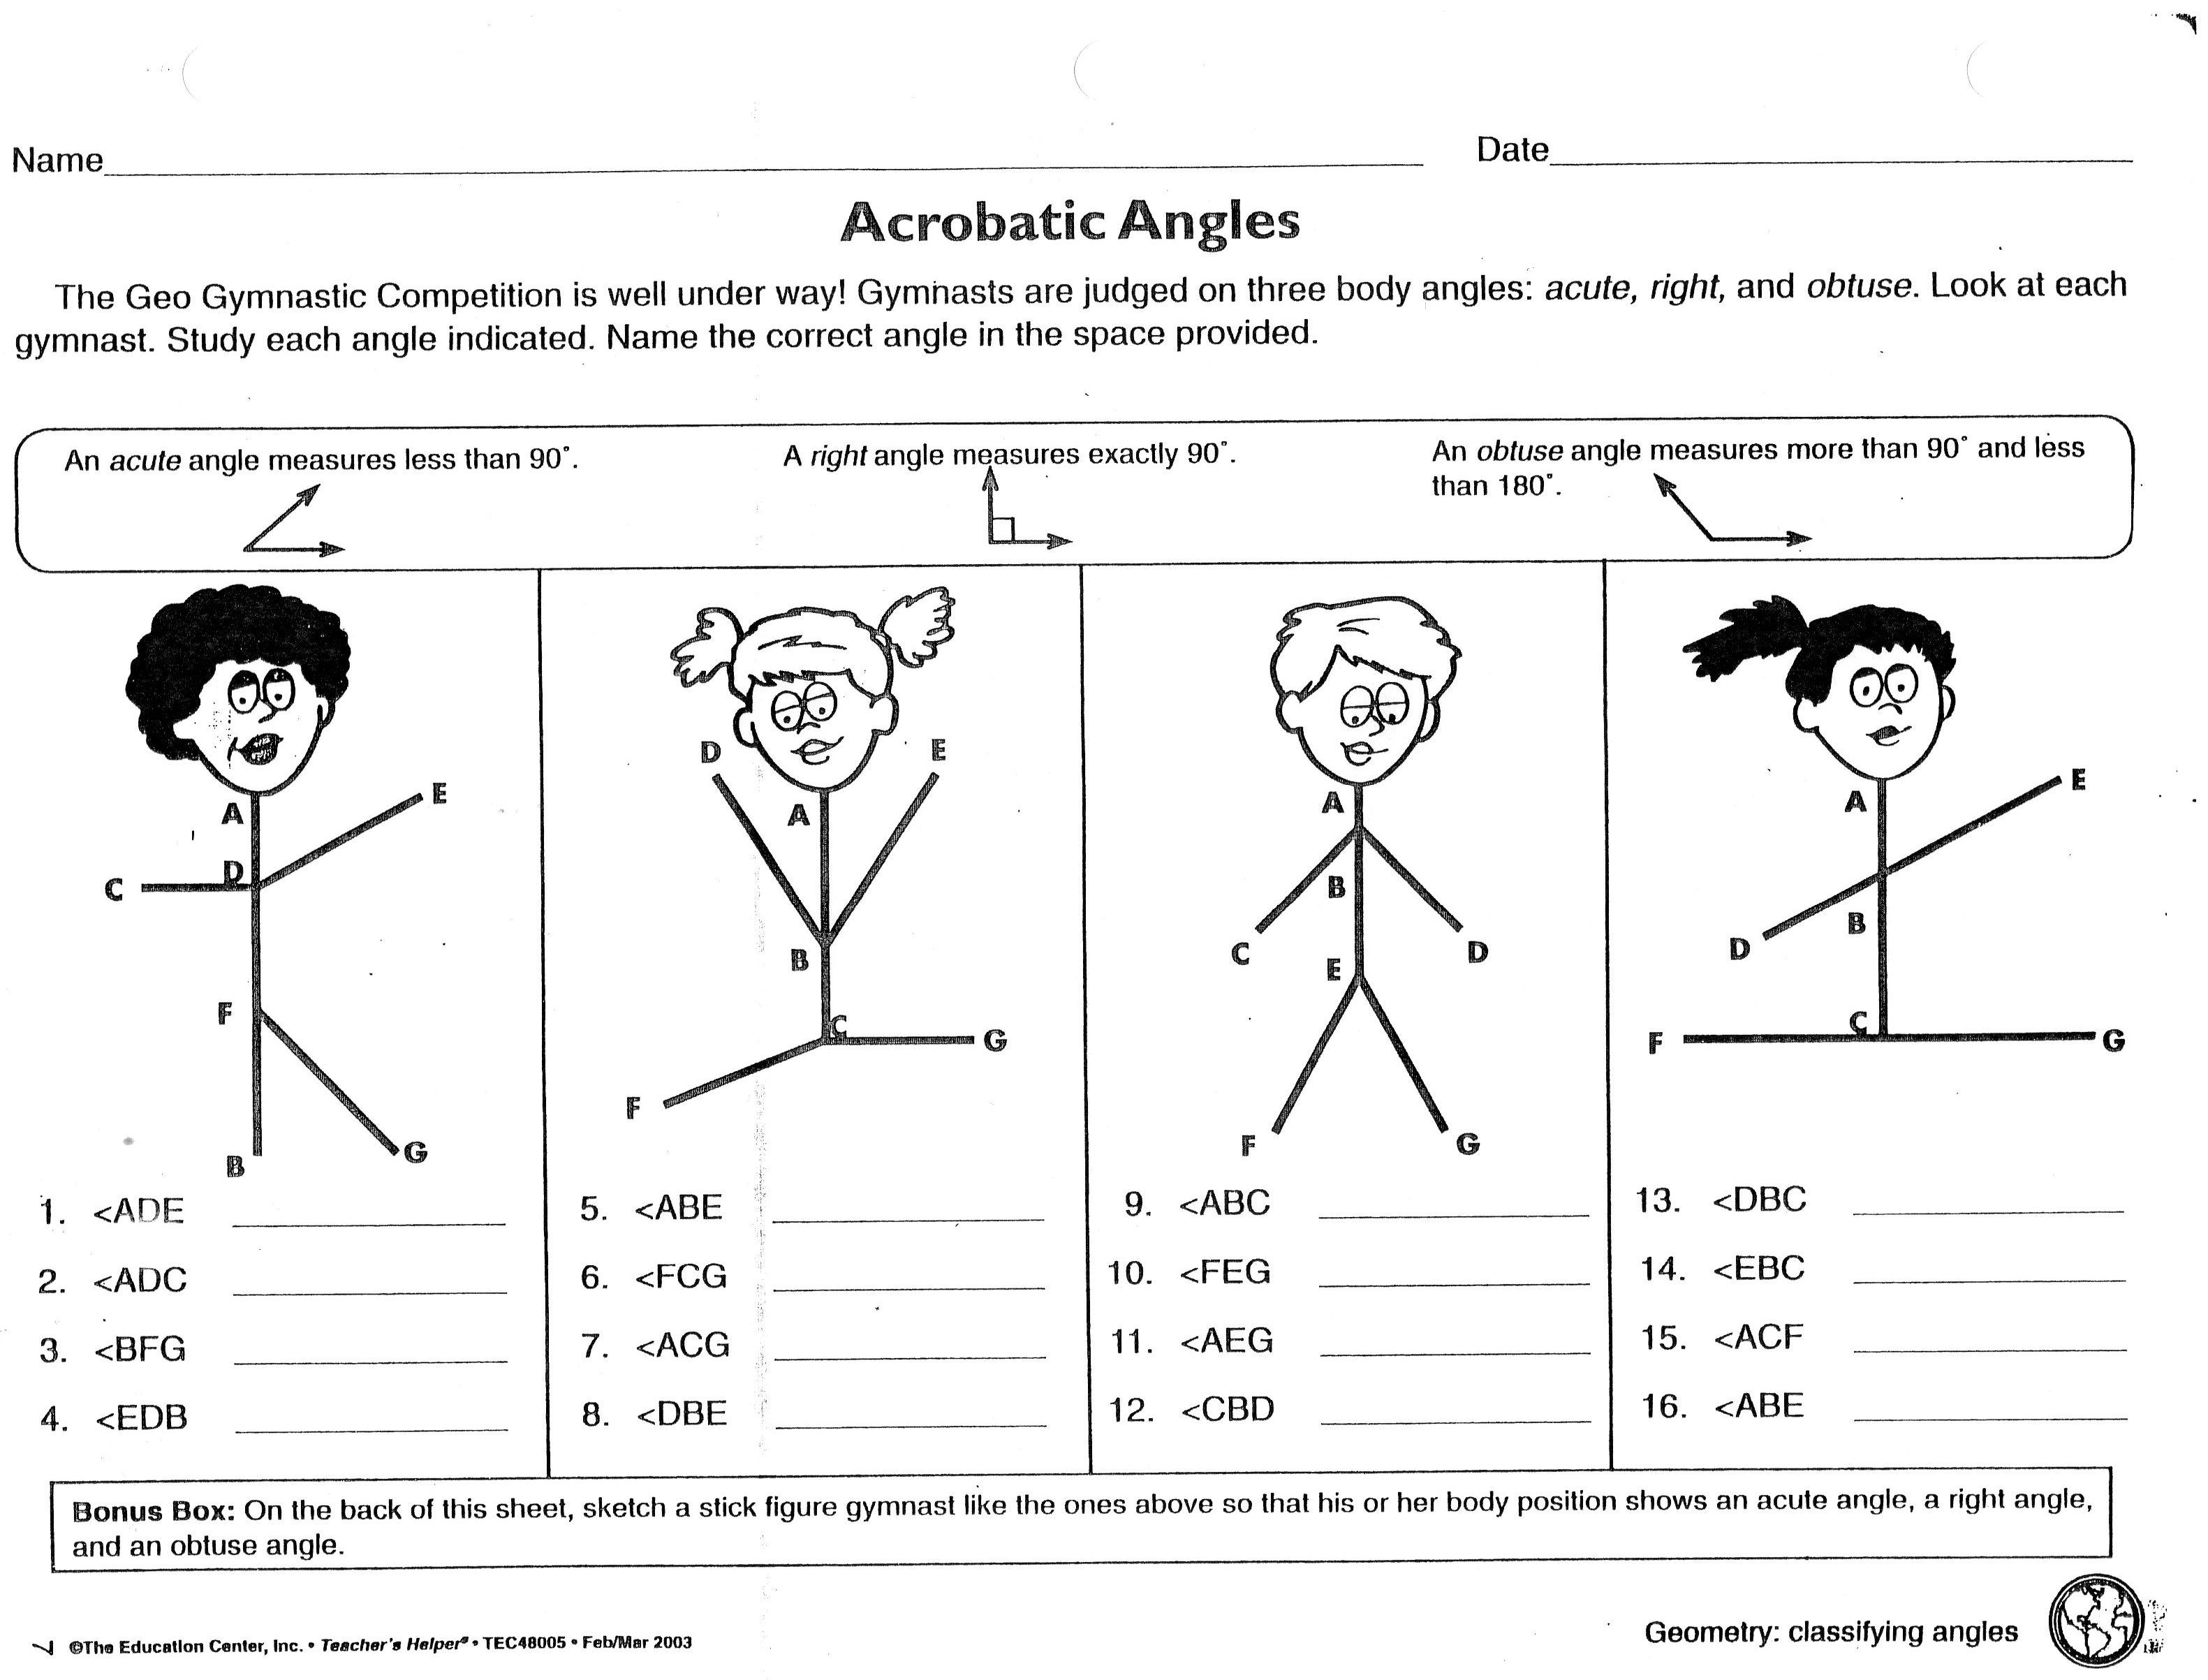 Acrobatic Angles Worksheet Obtuse Acute Right Michael Jordan Was Math Gr